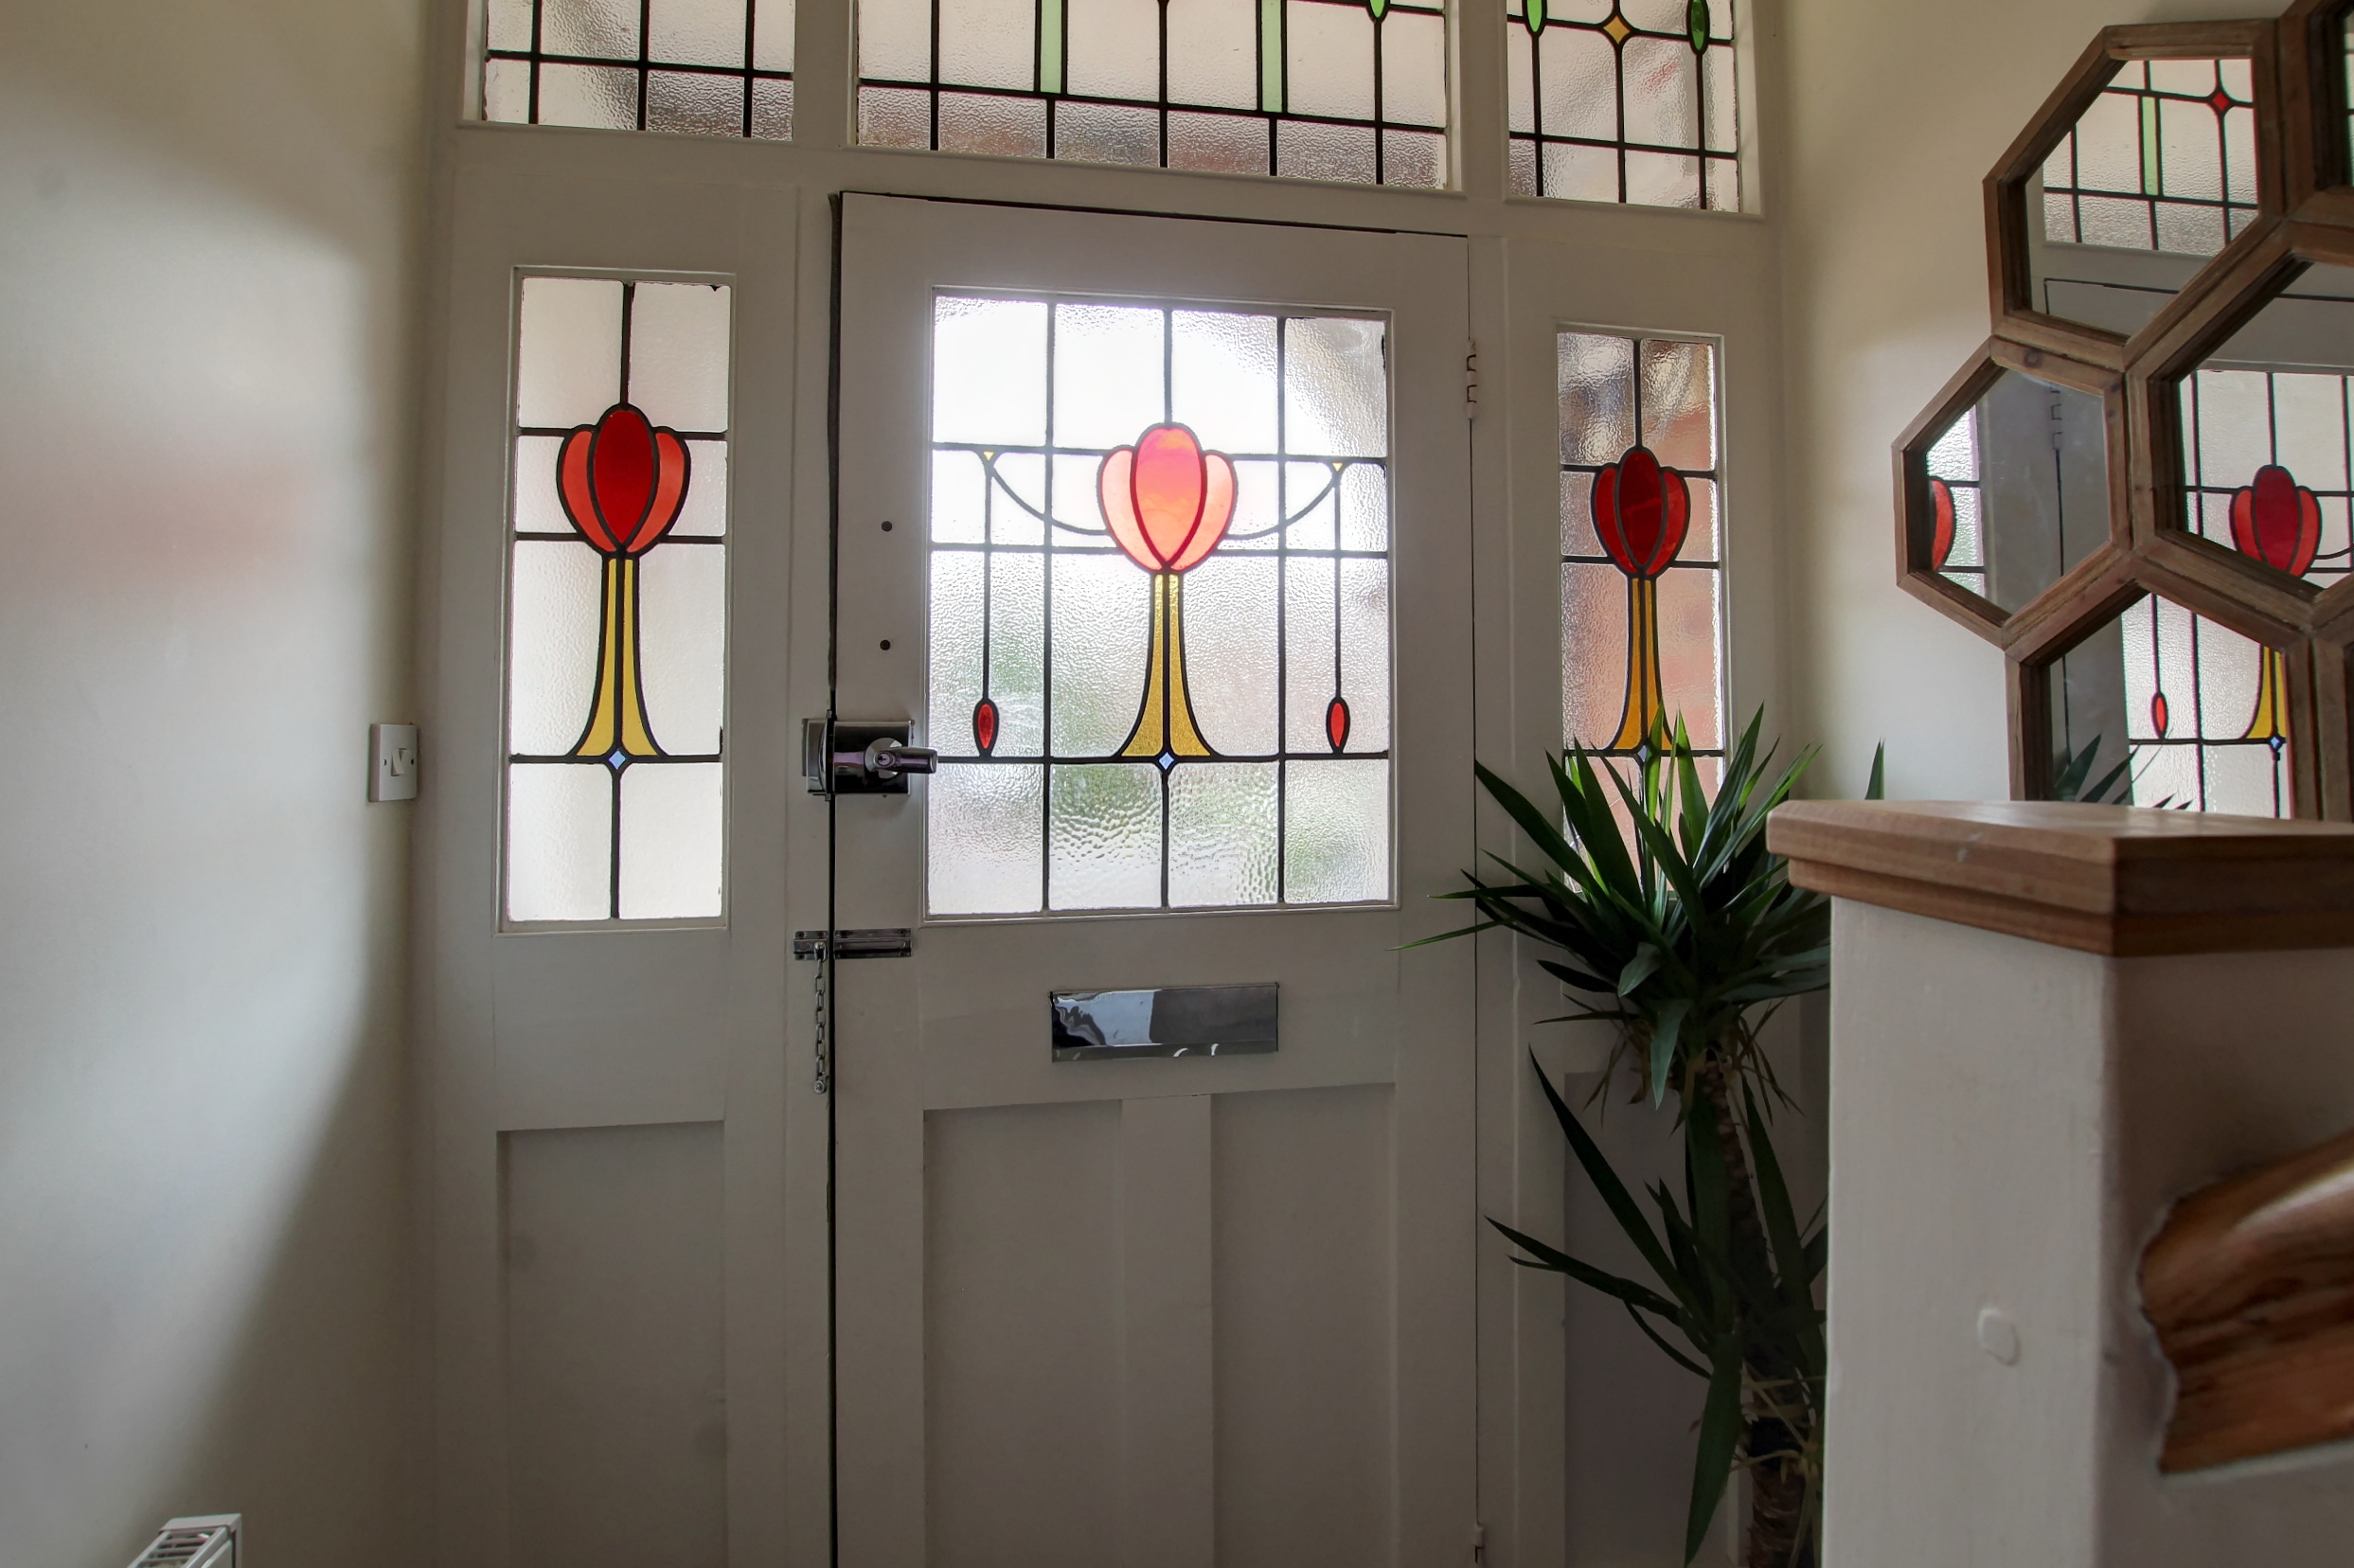 16 hall and stained glass lifestyle.jpg